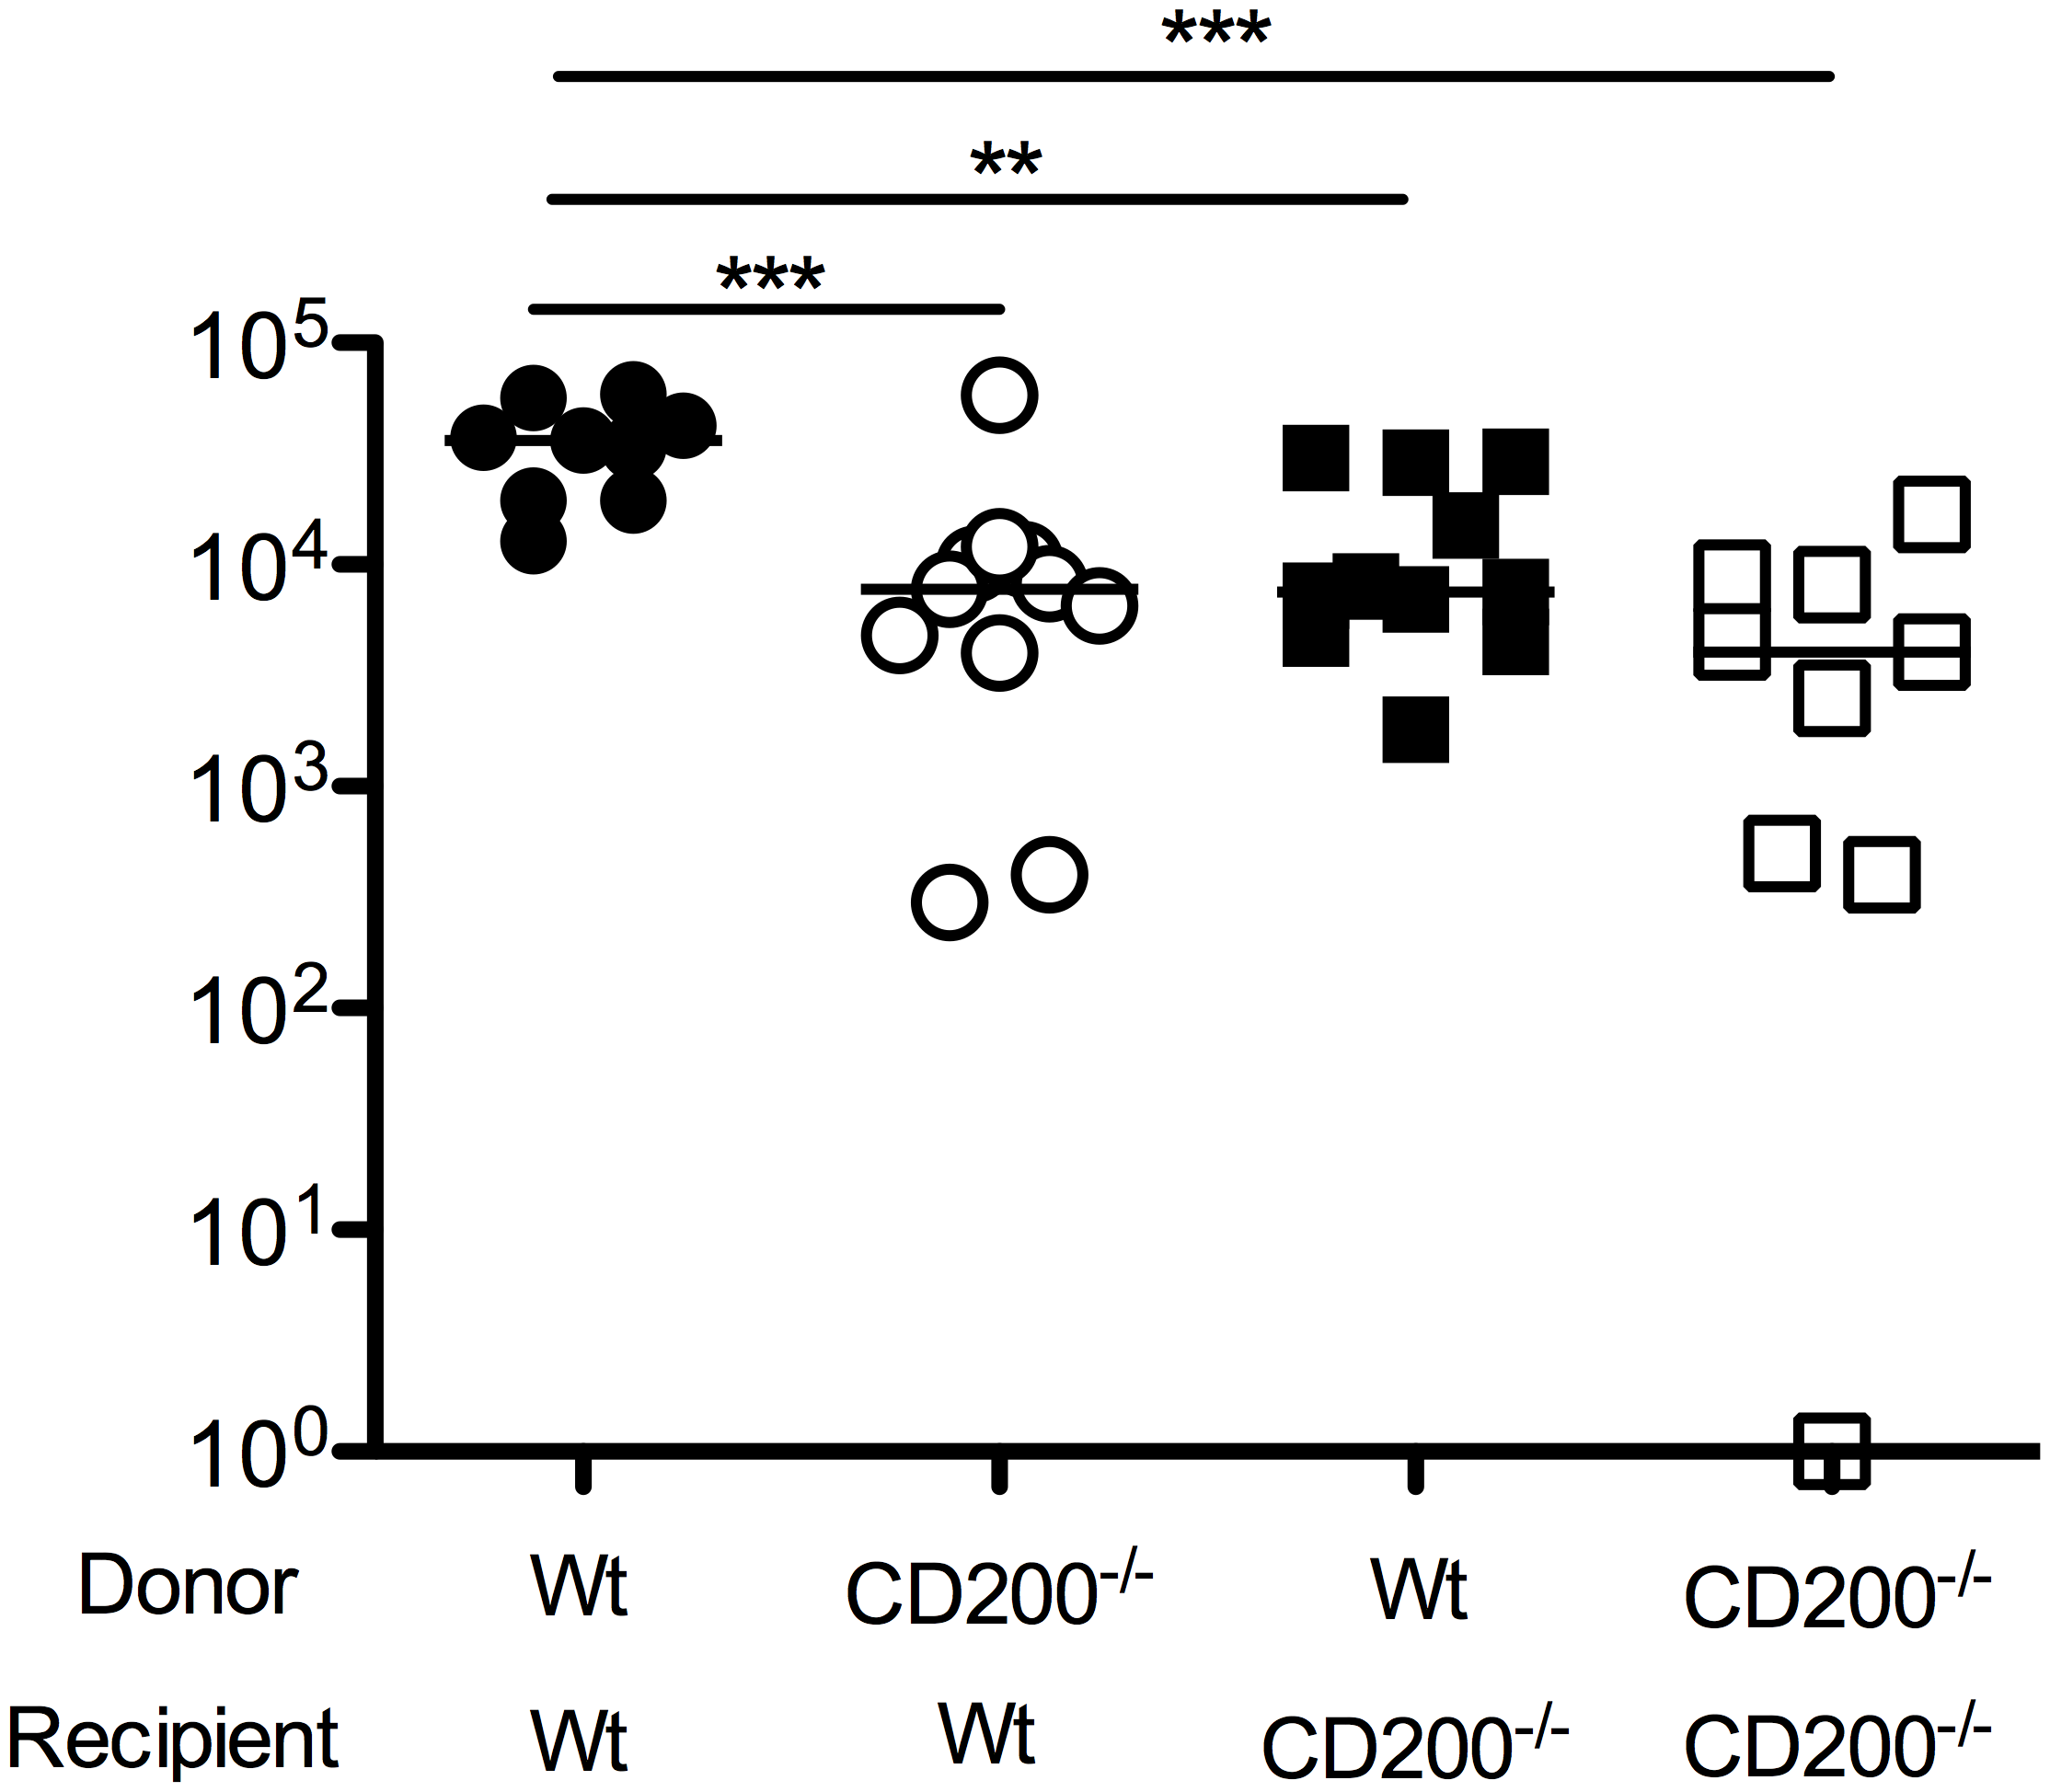 CD200 expressed by hematopoietic and non-hematopoietic cells facilitate MCMV persistence.